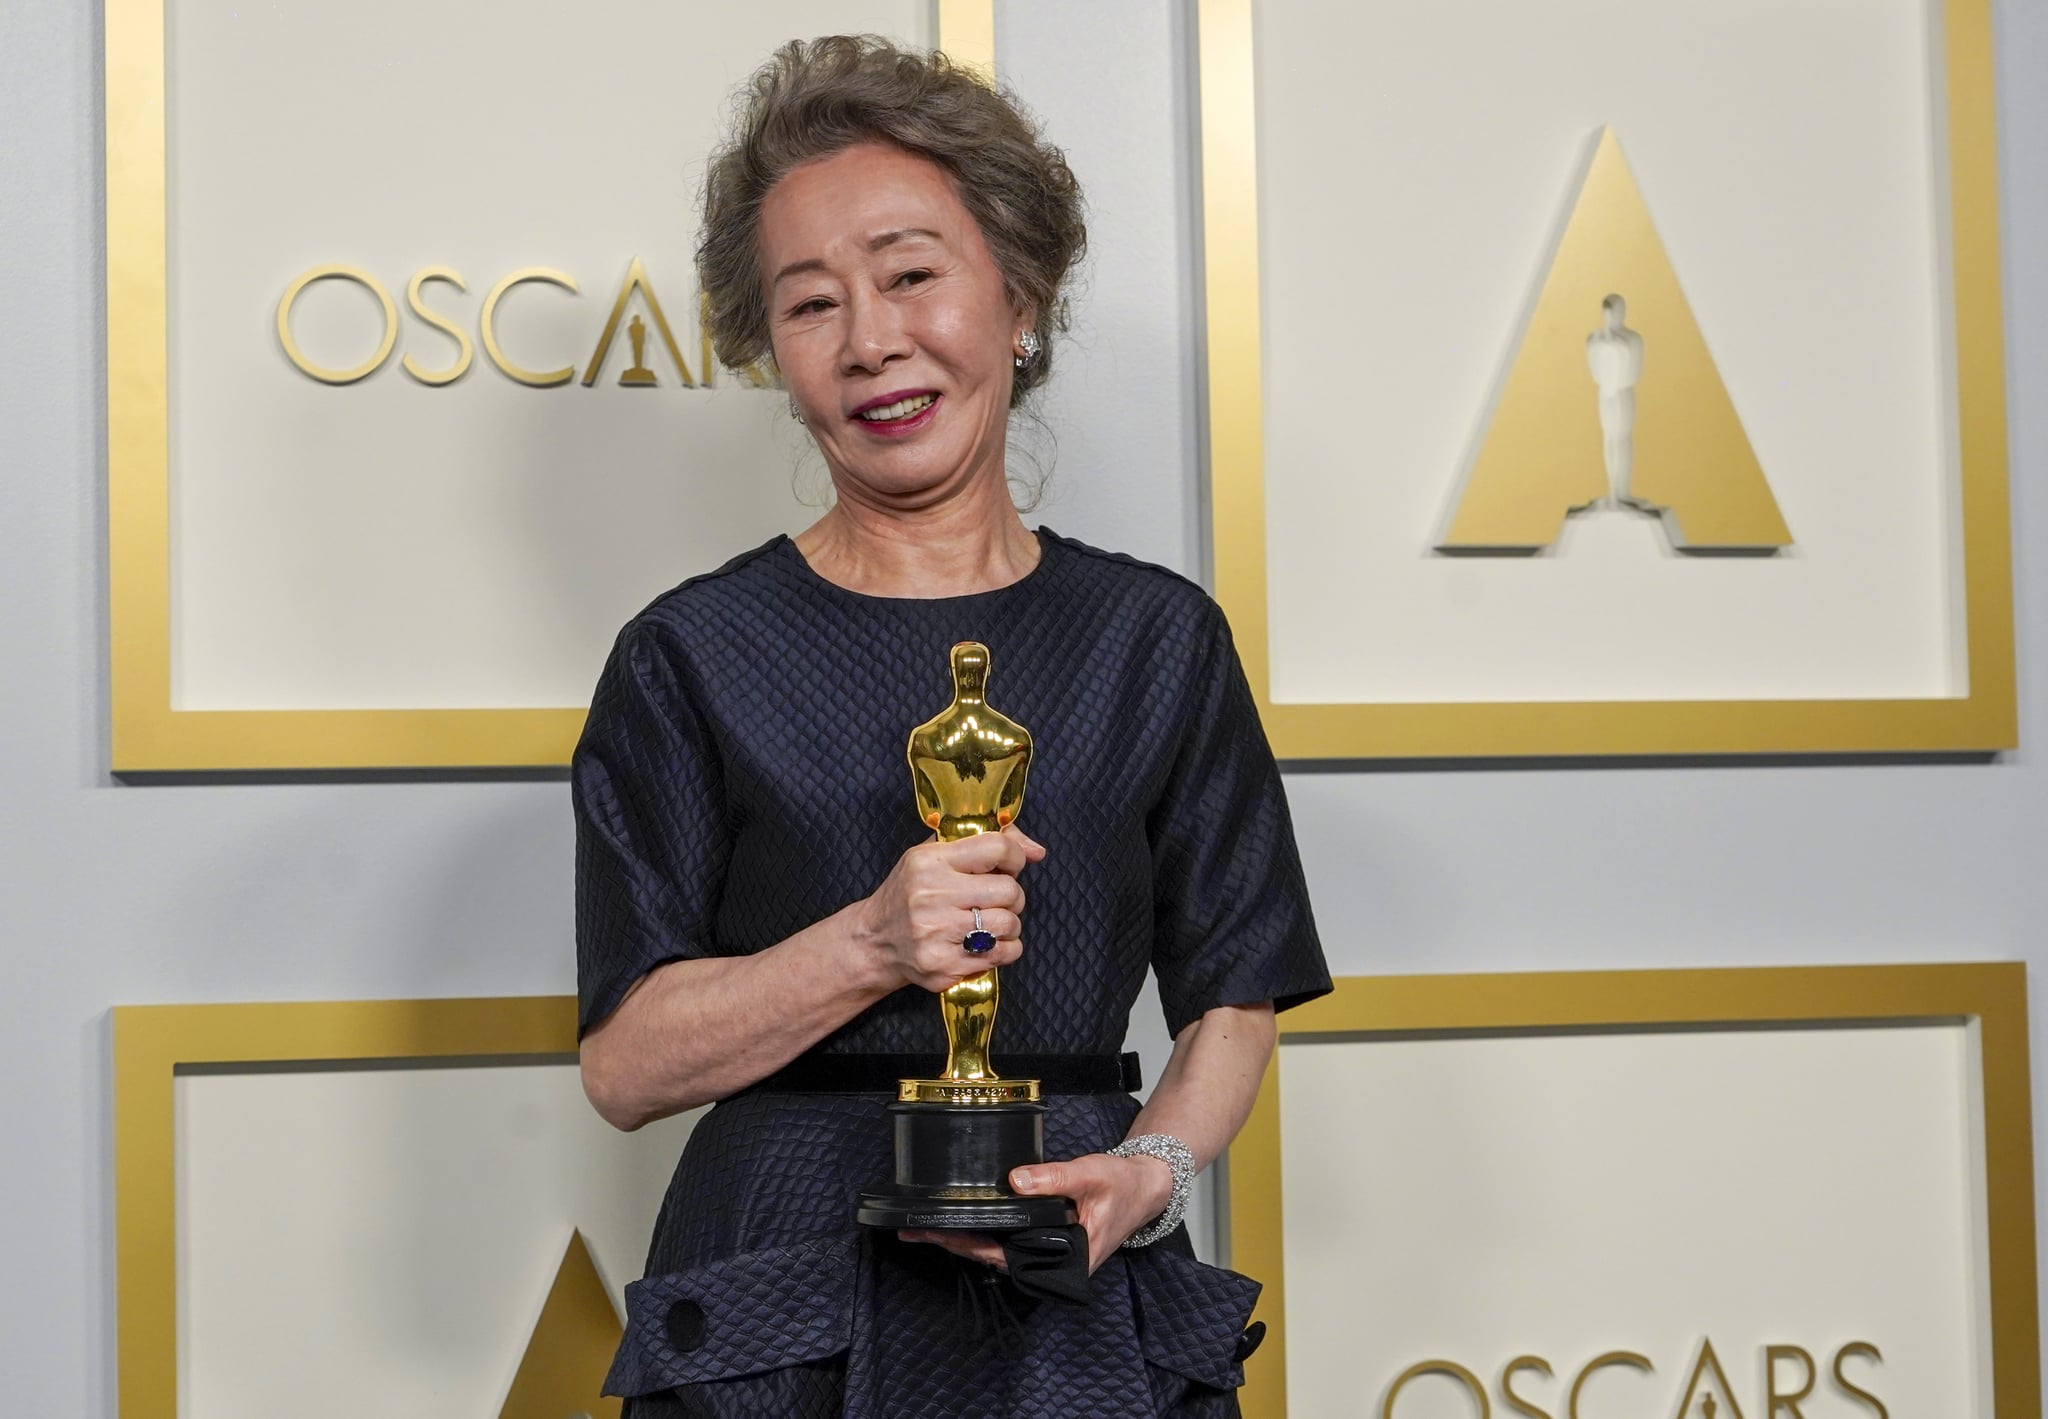 LOS ANGELES, CALIFORNIA - APRIL 25: Yuh-Jung Youn, winner of Best Actress in a Supporting Role for